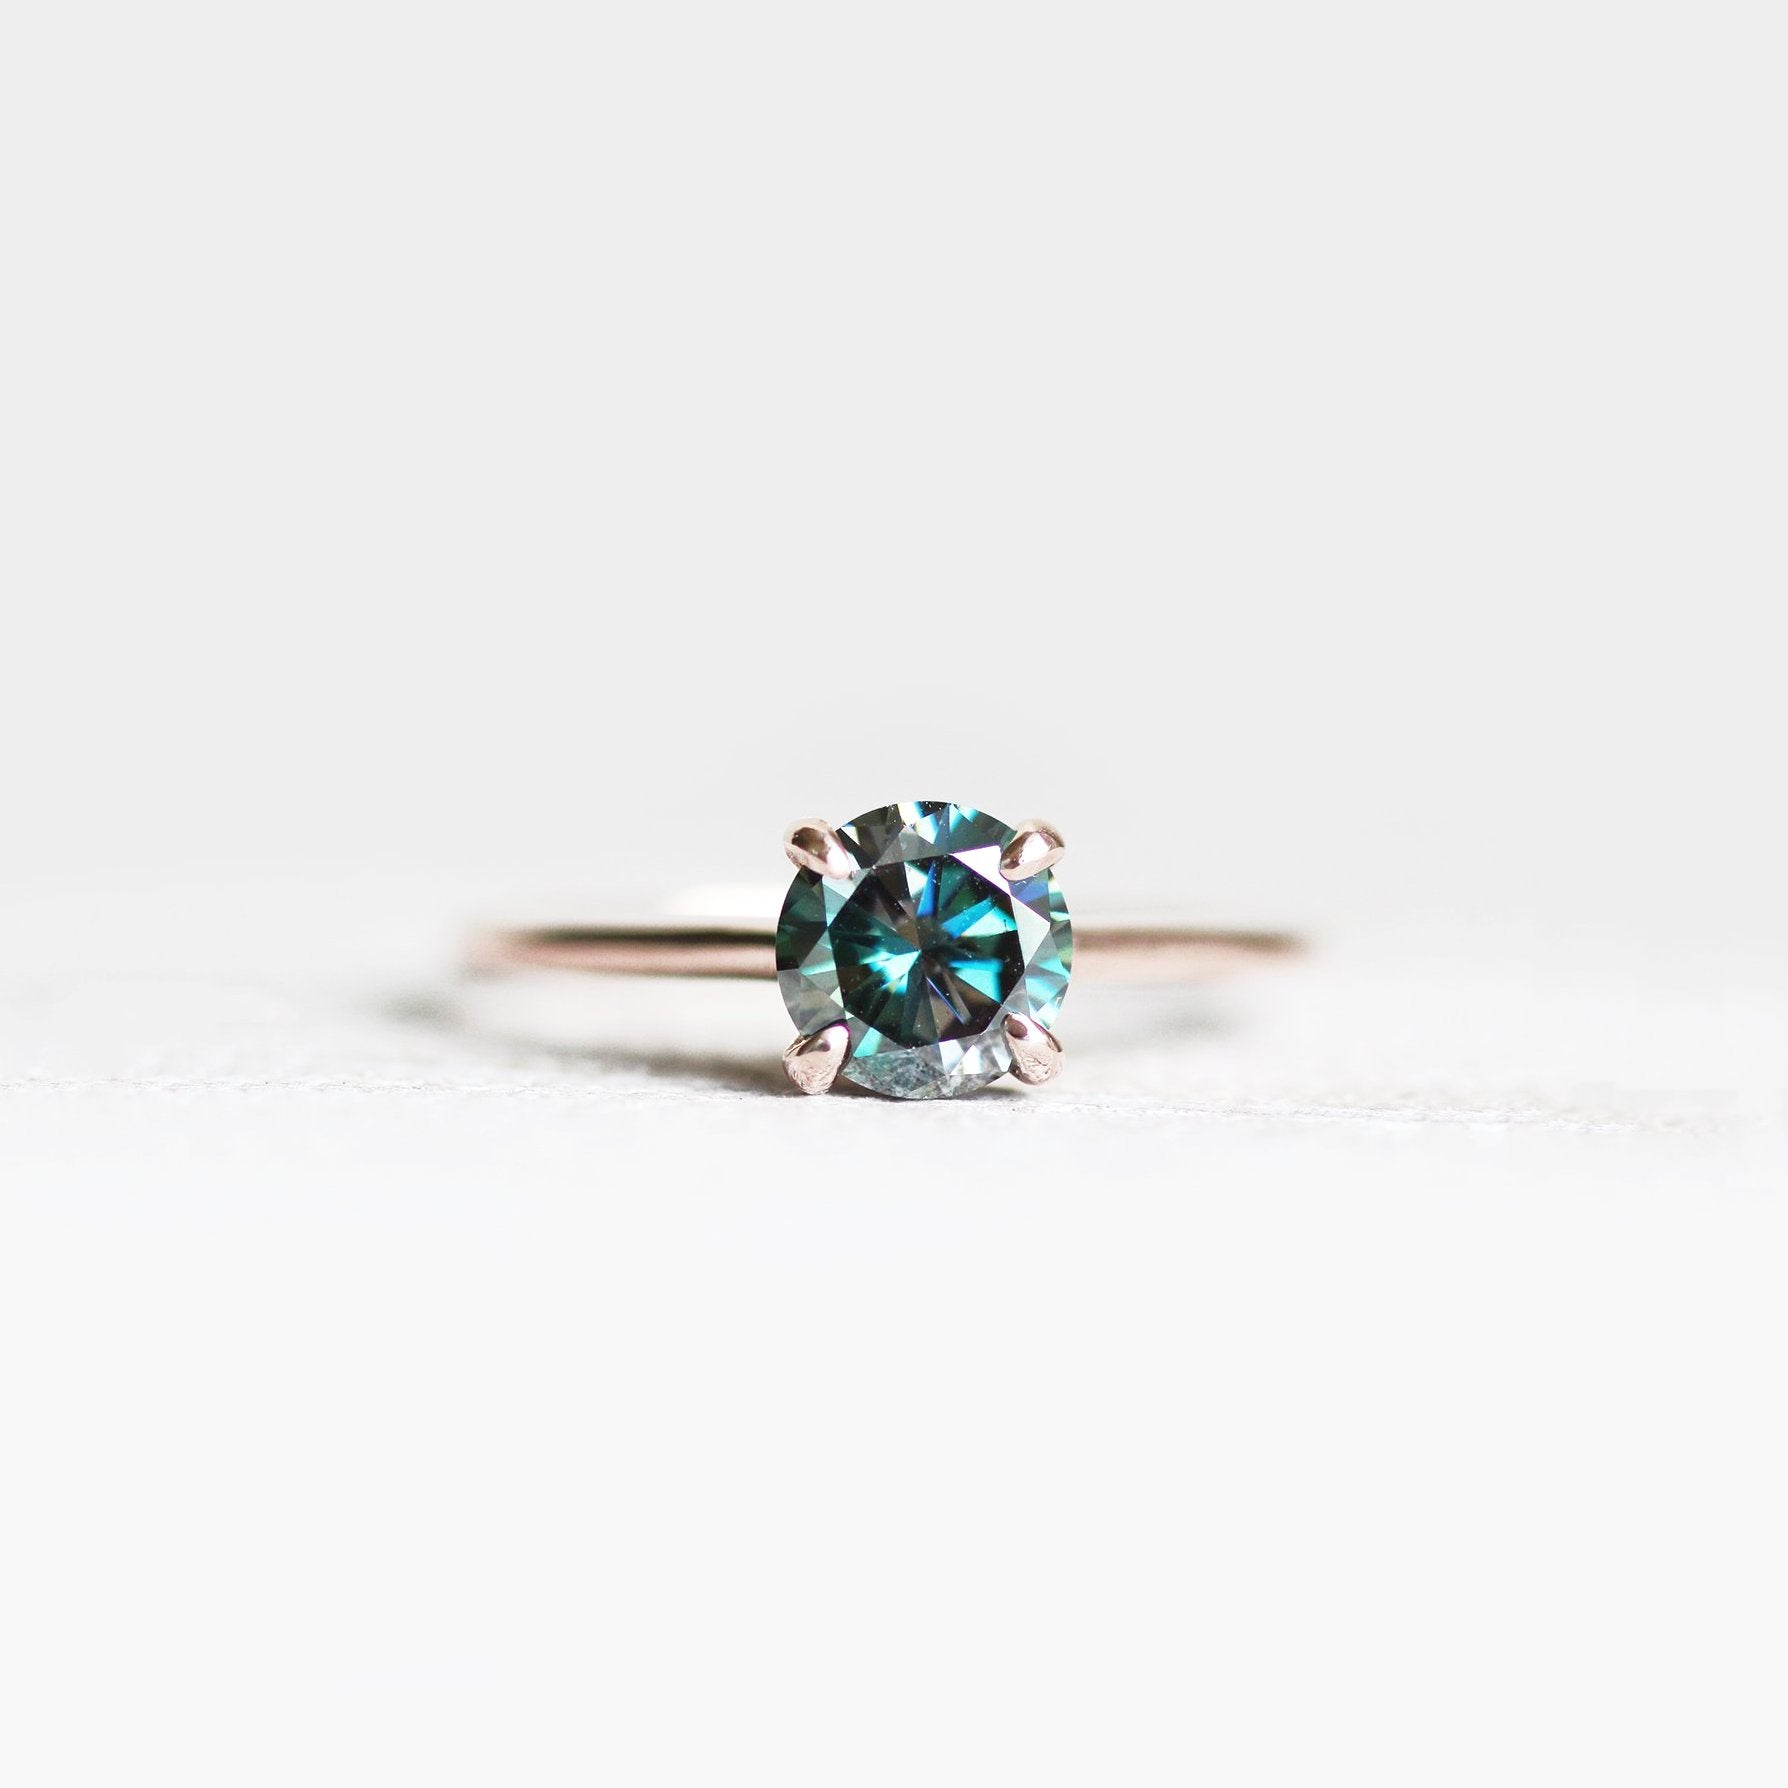 Dark Black Blue Moissanite Solitaire Ring in your choice of metal - Celestial Diamonds ® by Midwinter Co.